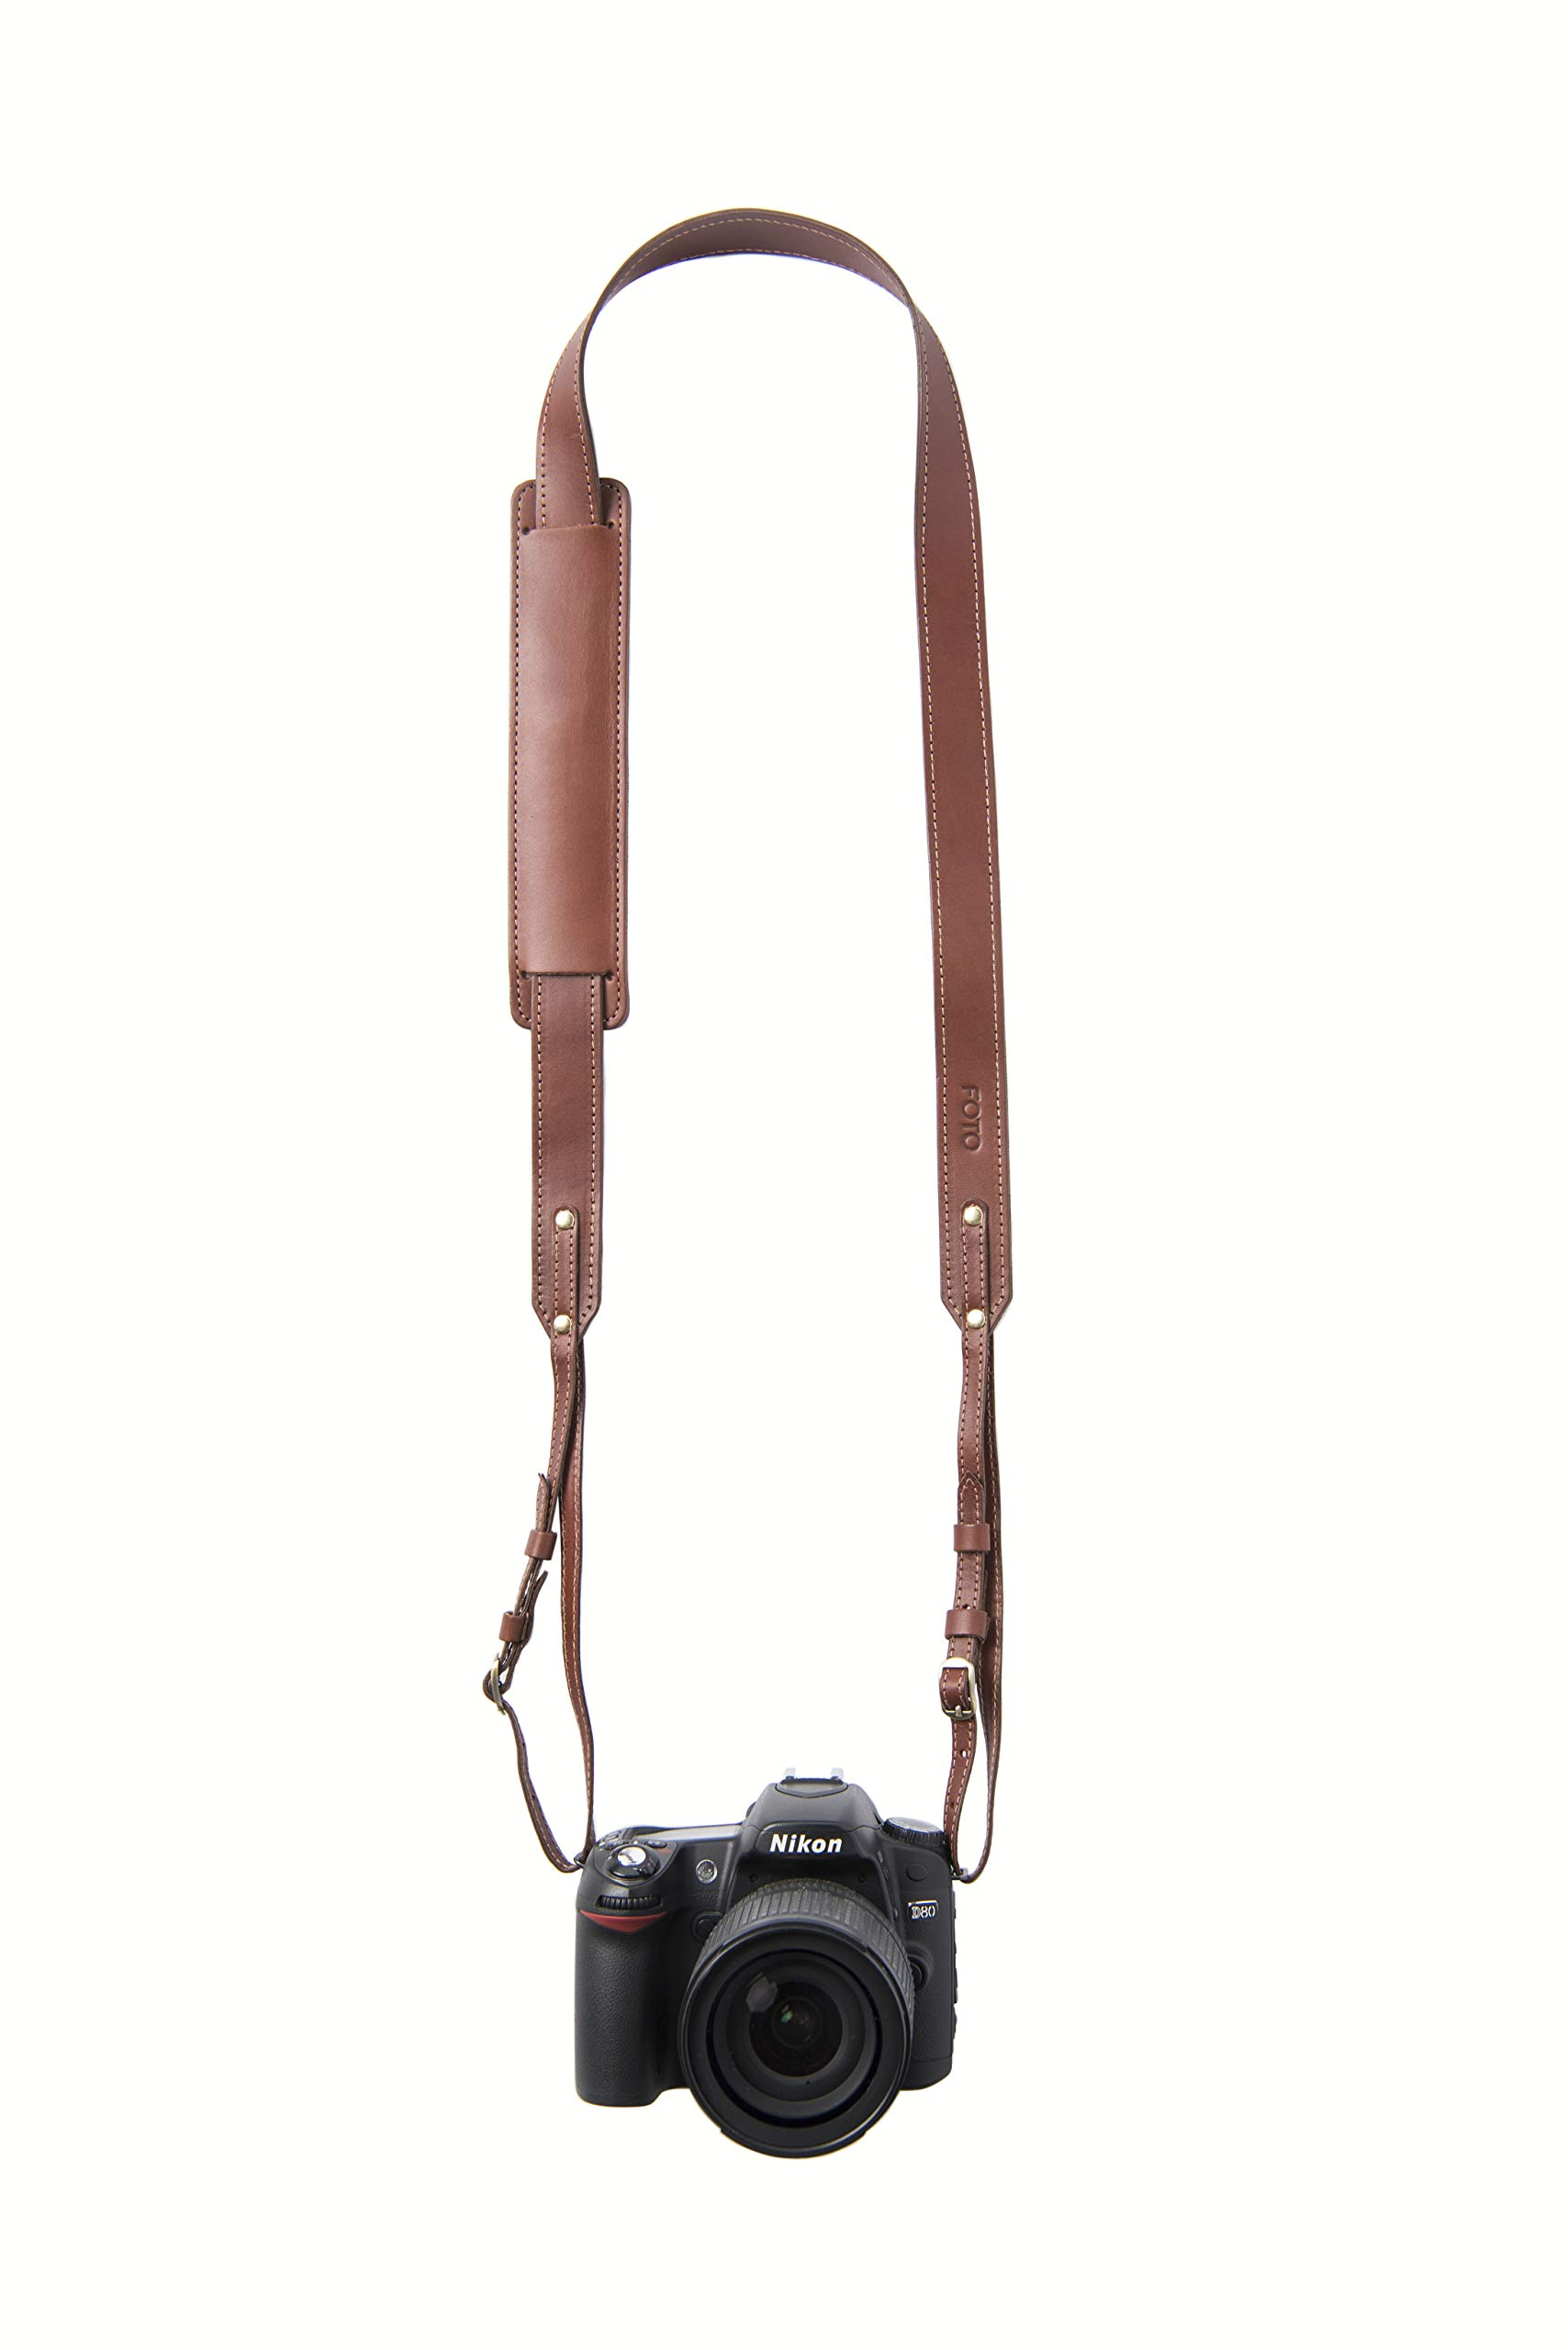 Dutch Skinny Fotostrap | Brown Genuine Leather Camera Shoulder Neck Strap | for Nikon, Canon, Sony, Pentax, Leica, Olympus DSLR, Mirrorless | Best Photographer Gifts | Gives Back by Fotostrap